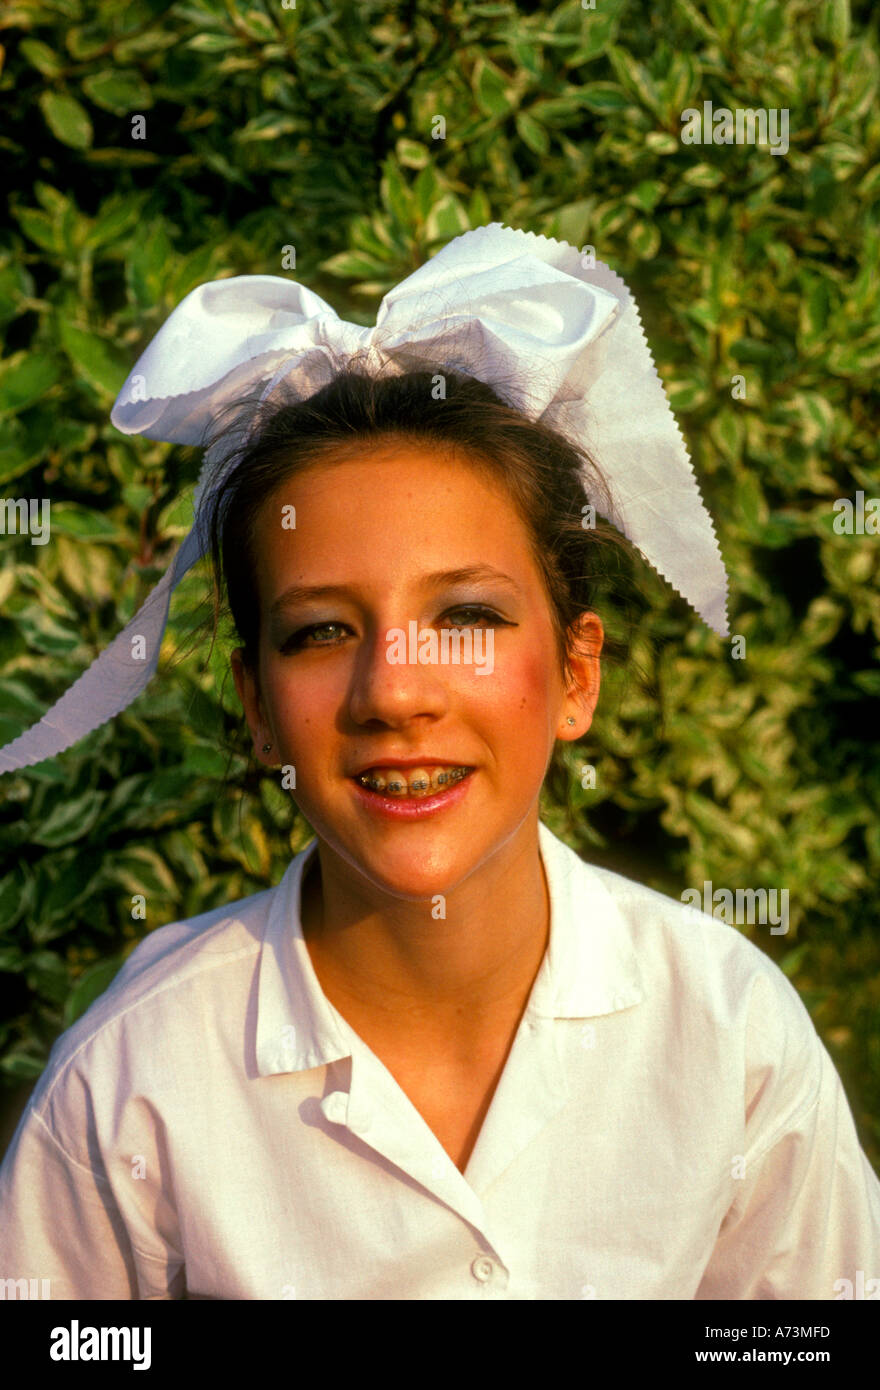 1, one, French girl, French, girl, female child, student, wearing costume, costume dance, school dance, Les Mureaux, Ile-de-France, France, Europe - Stock Image